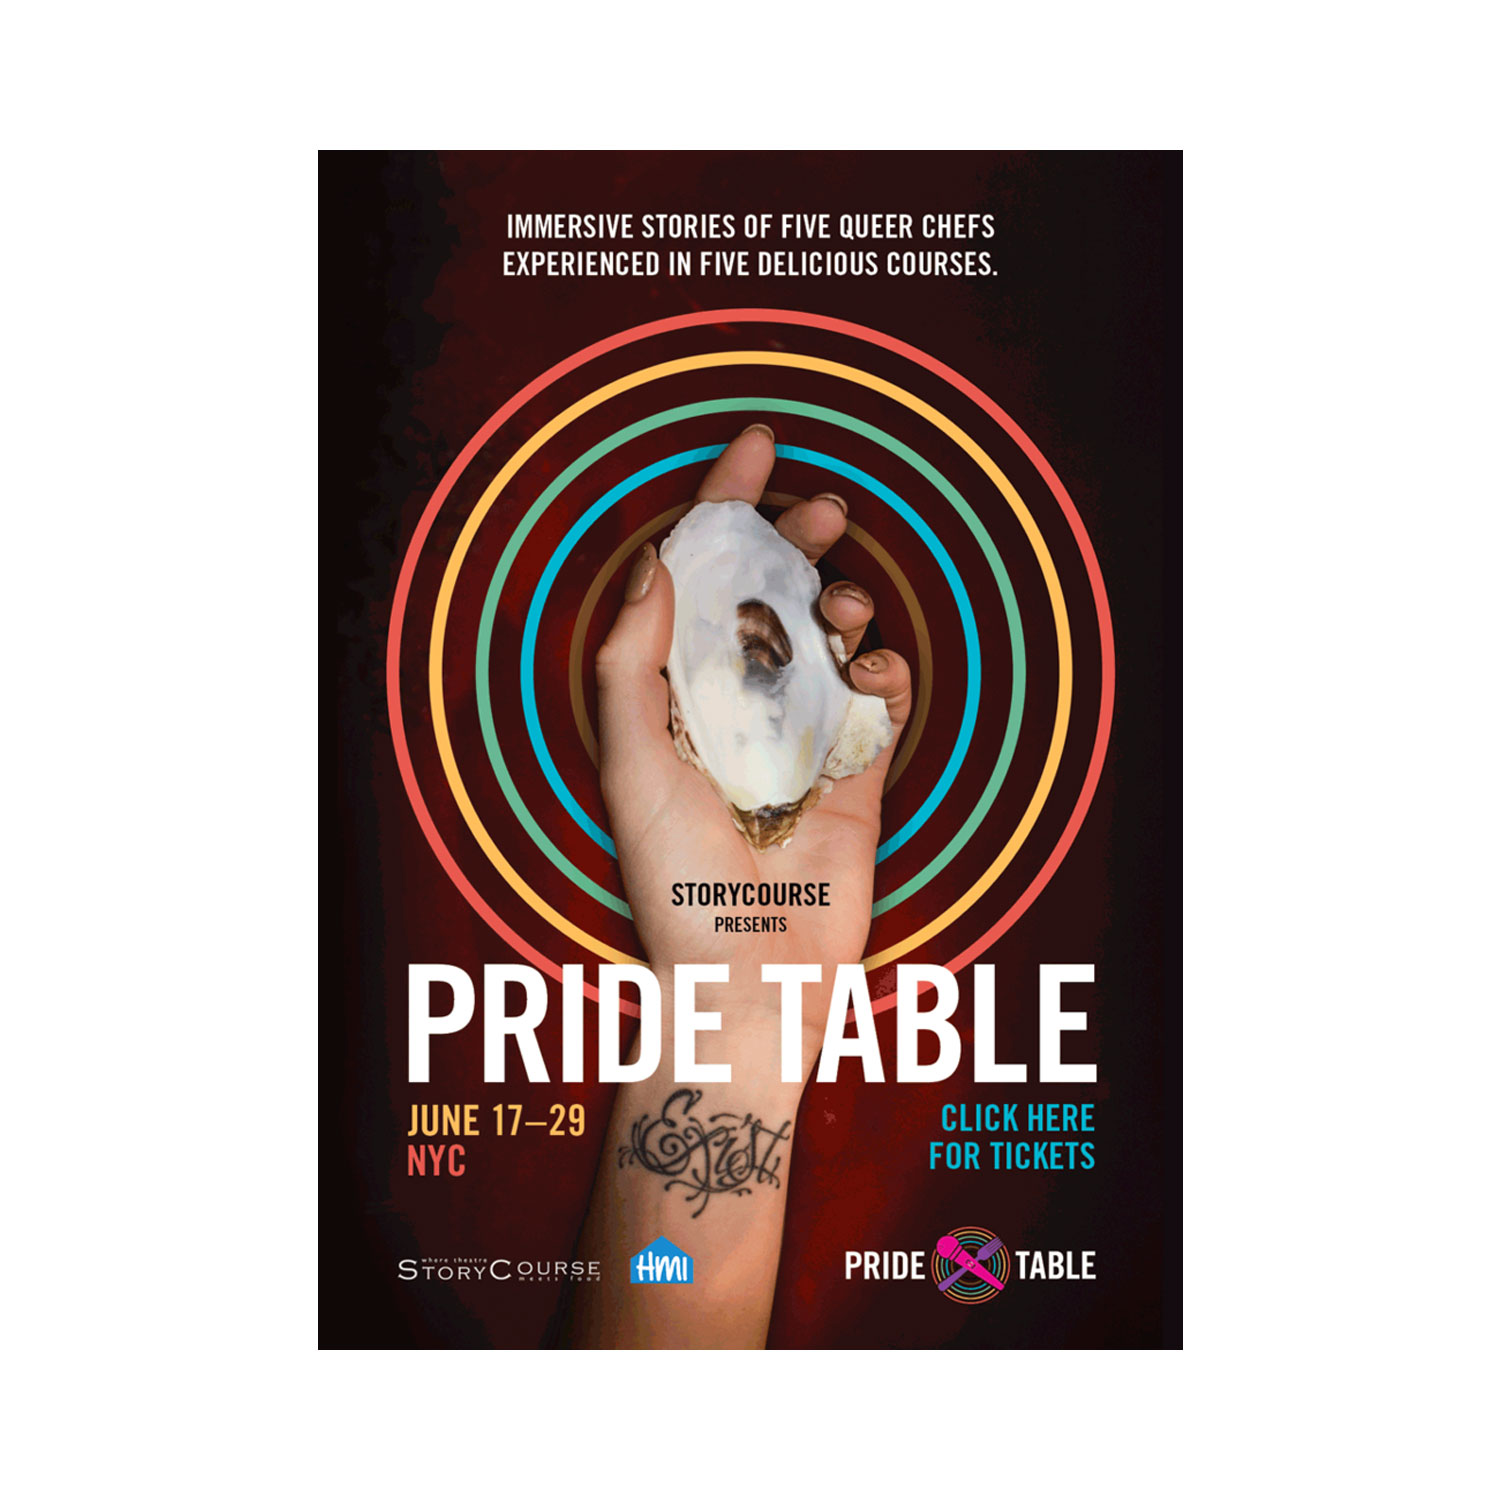 PRIDE TABLE BY STORY COURSE, JUNE 17–30